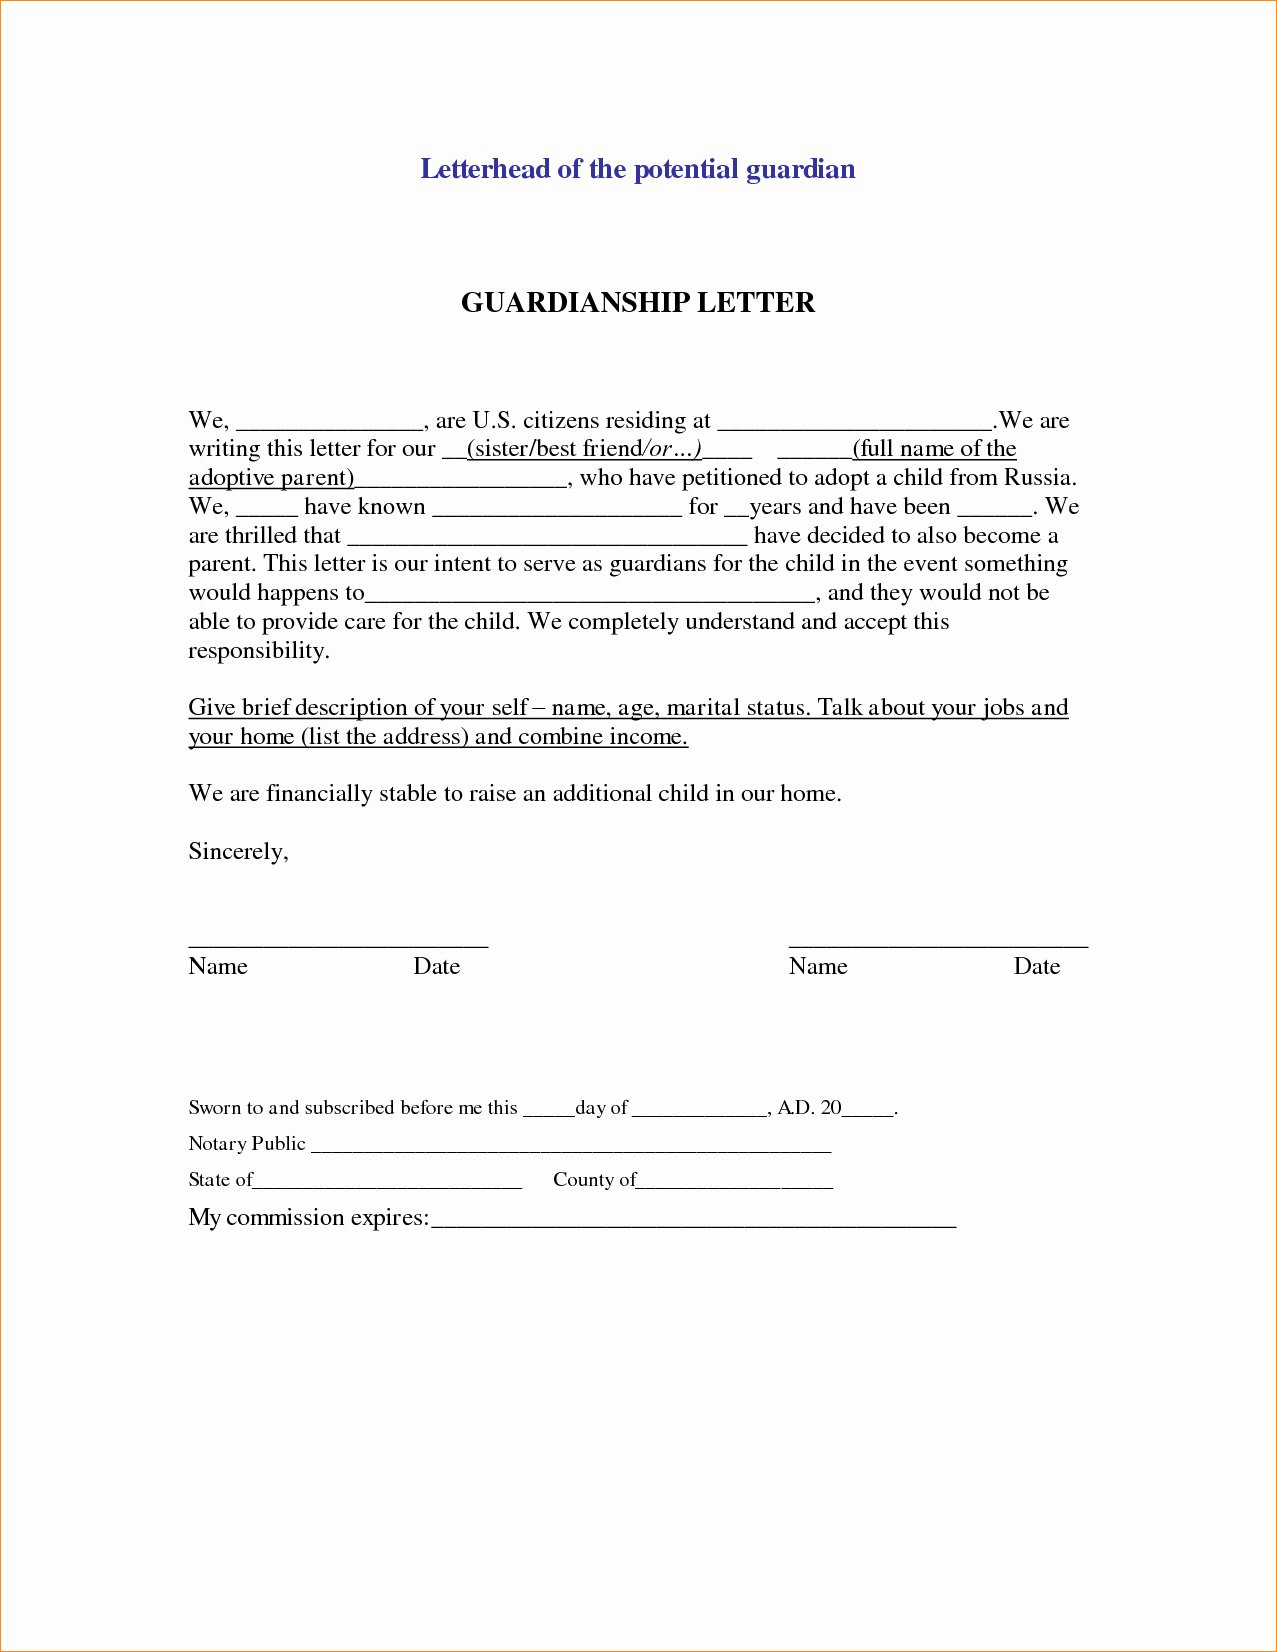 Permanent Guardianship Letter Template Lovely Permanent Guardianship Letter Template Collection